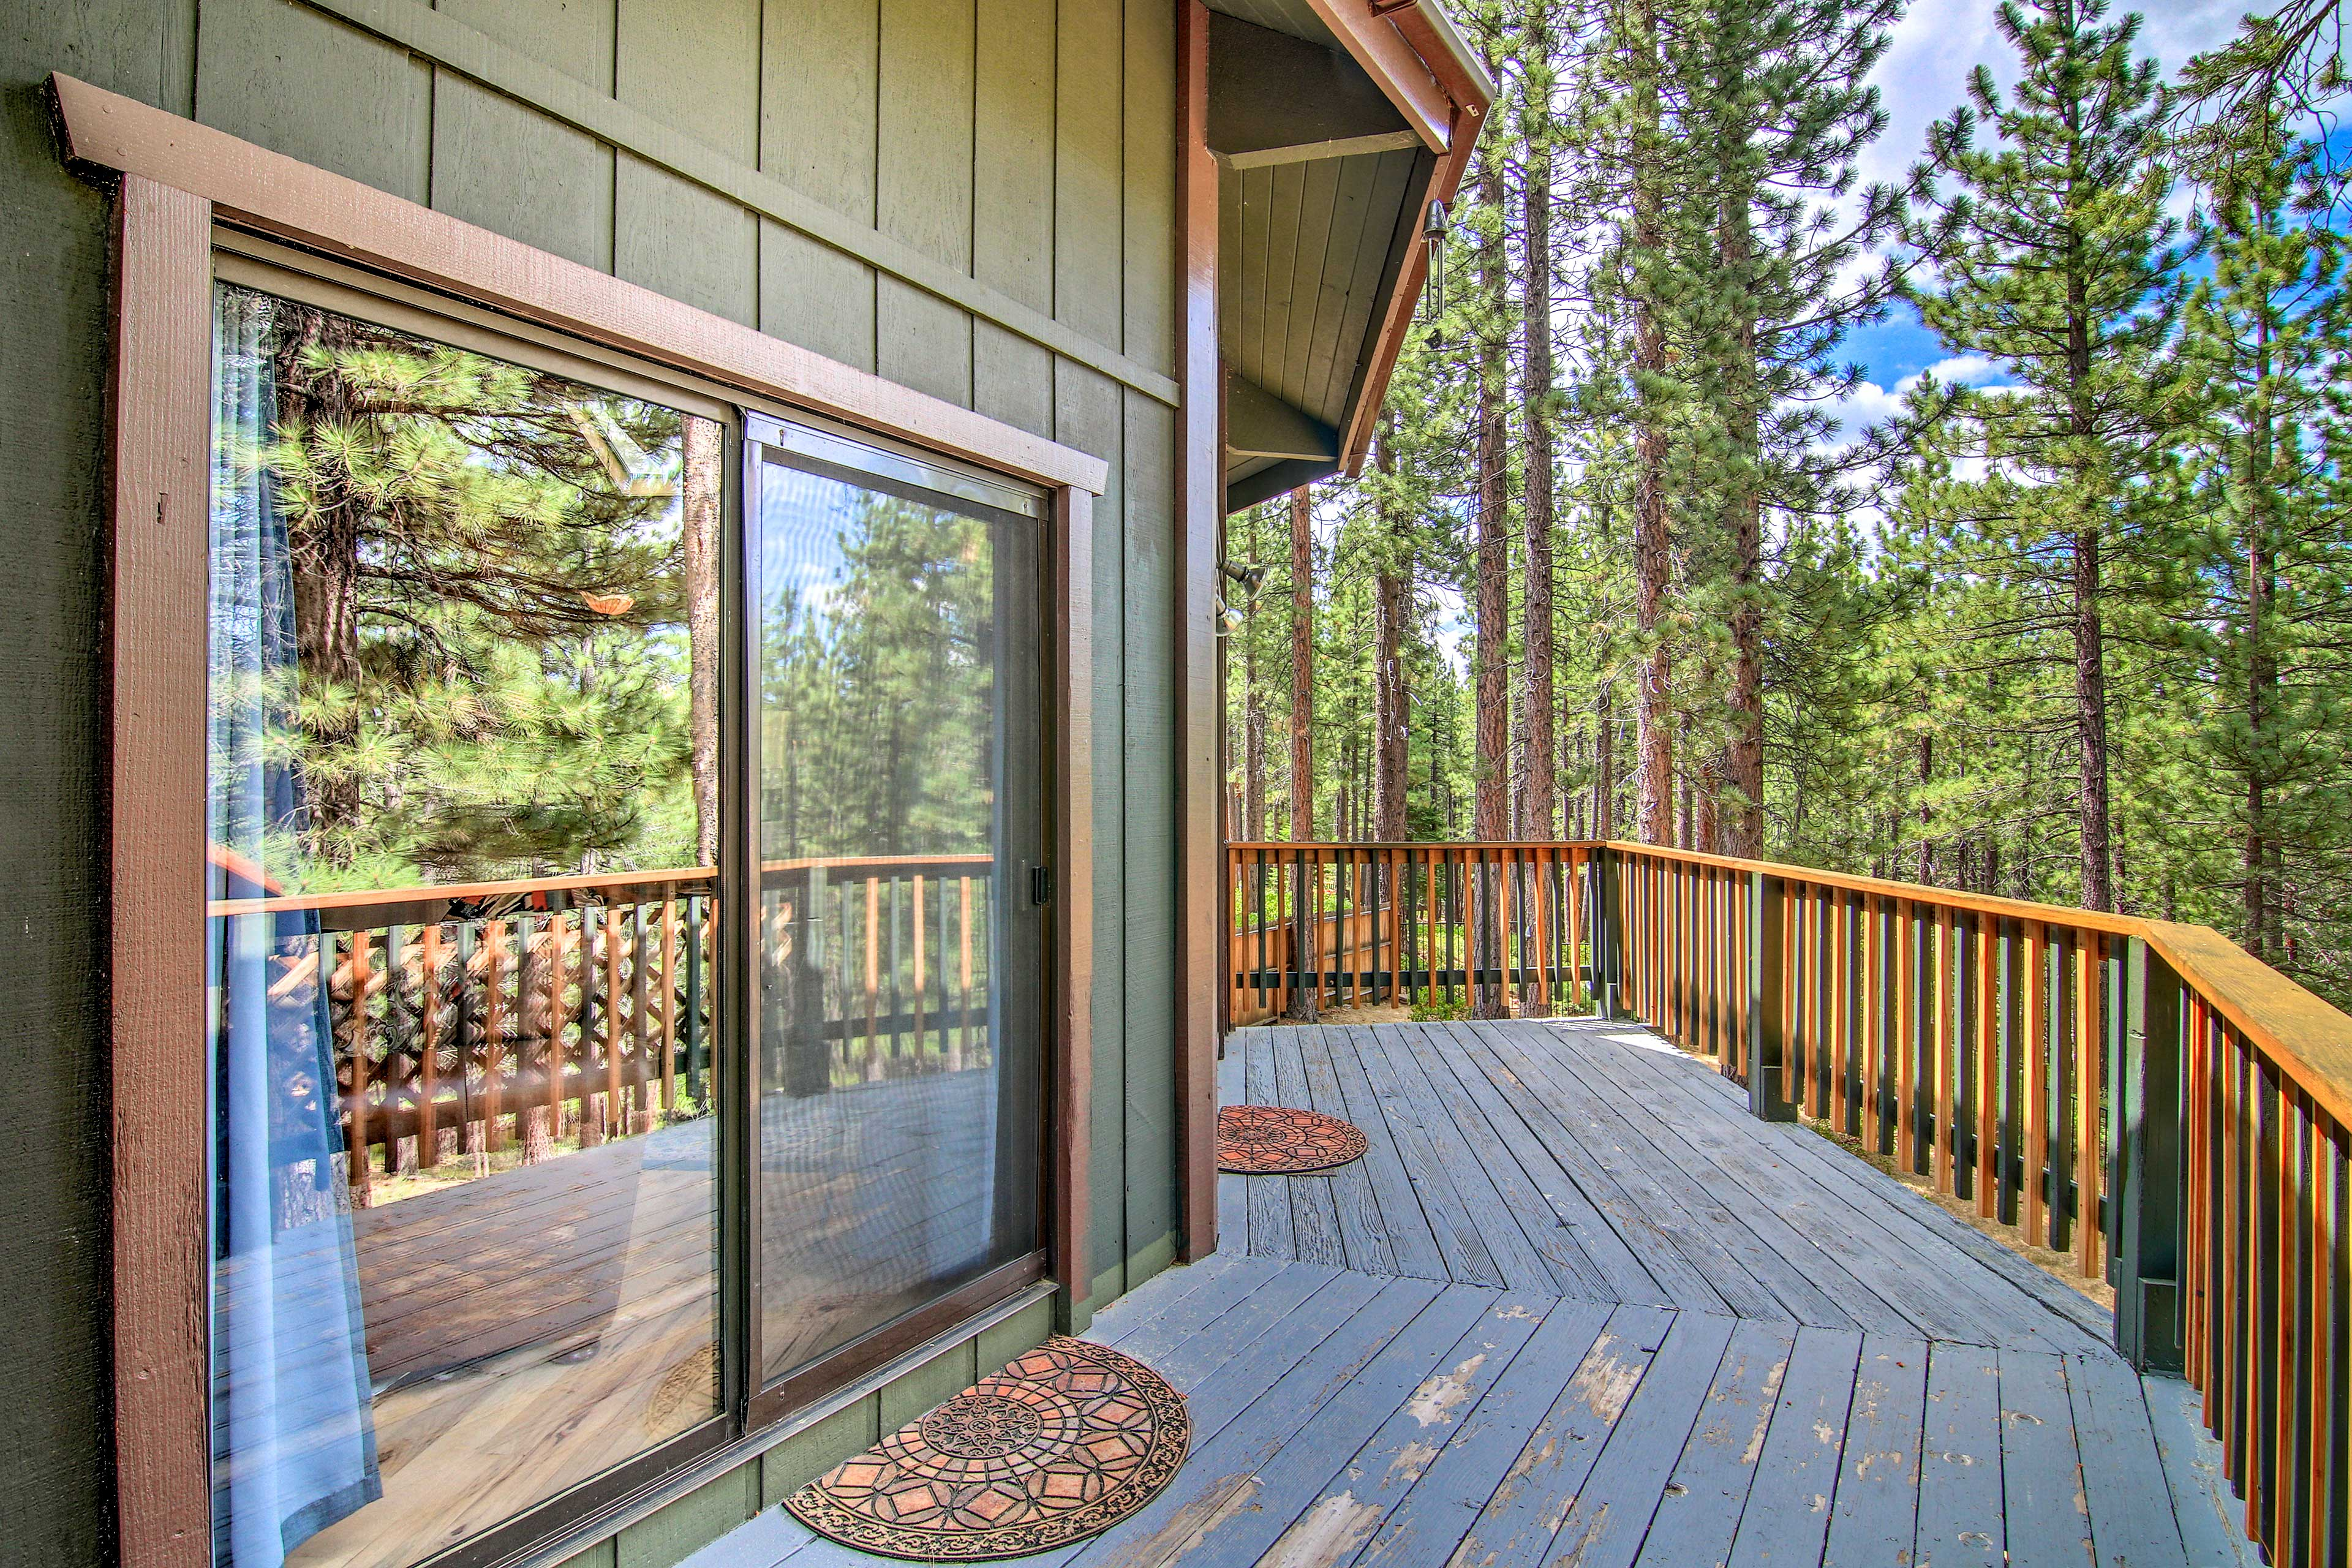 Enjoy forested views from the deck.